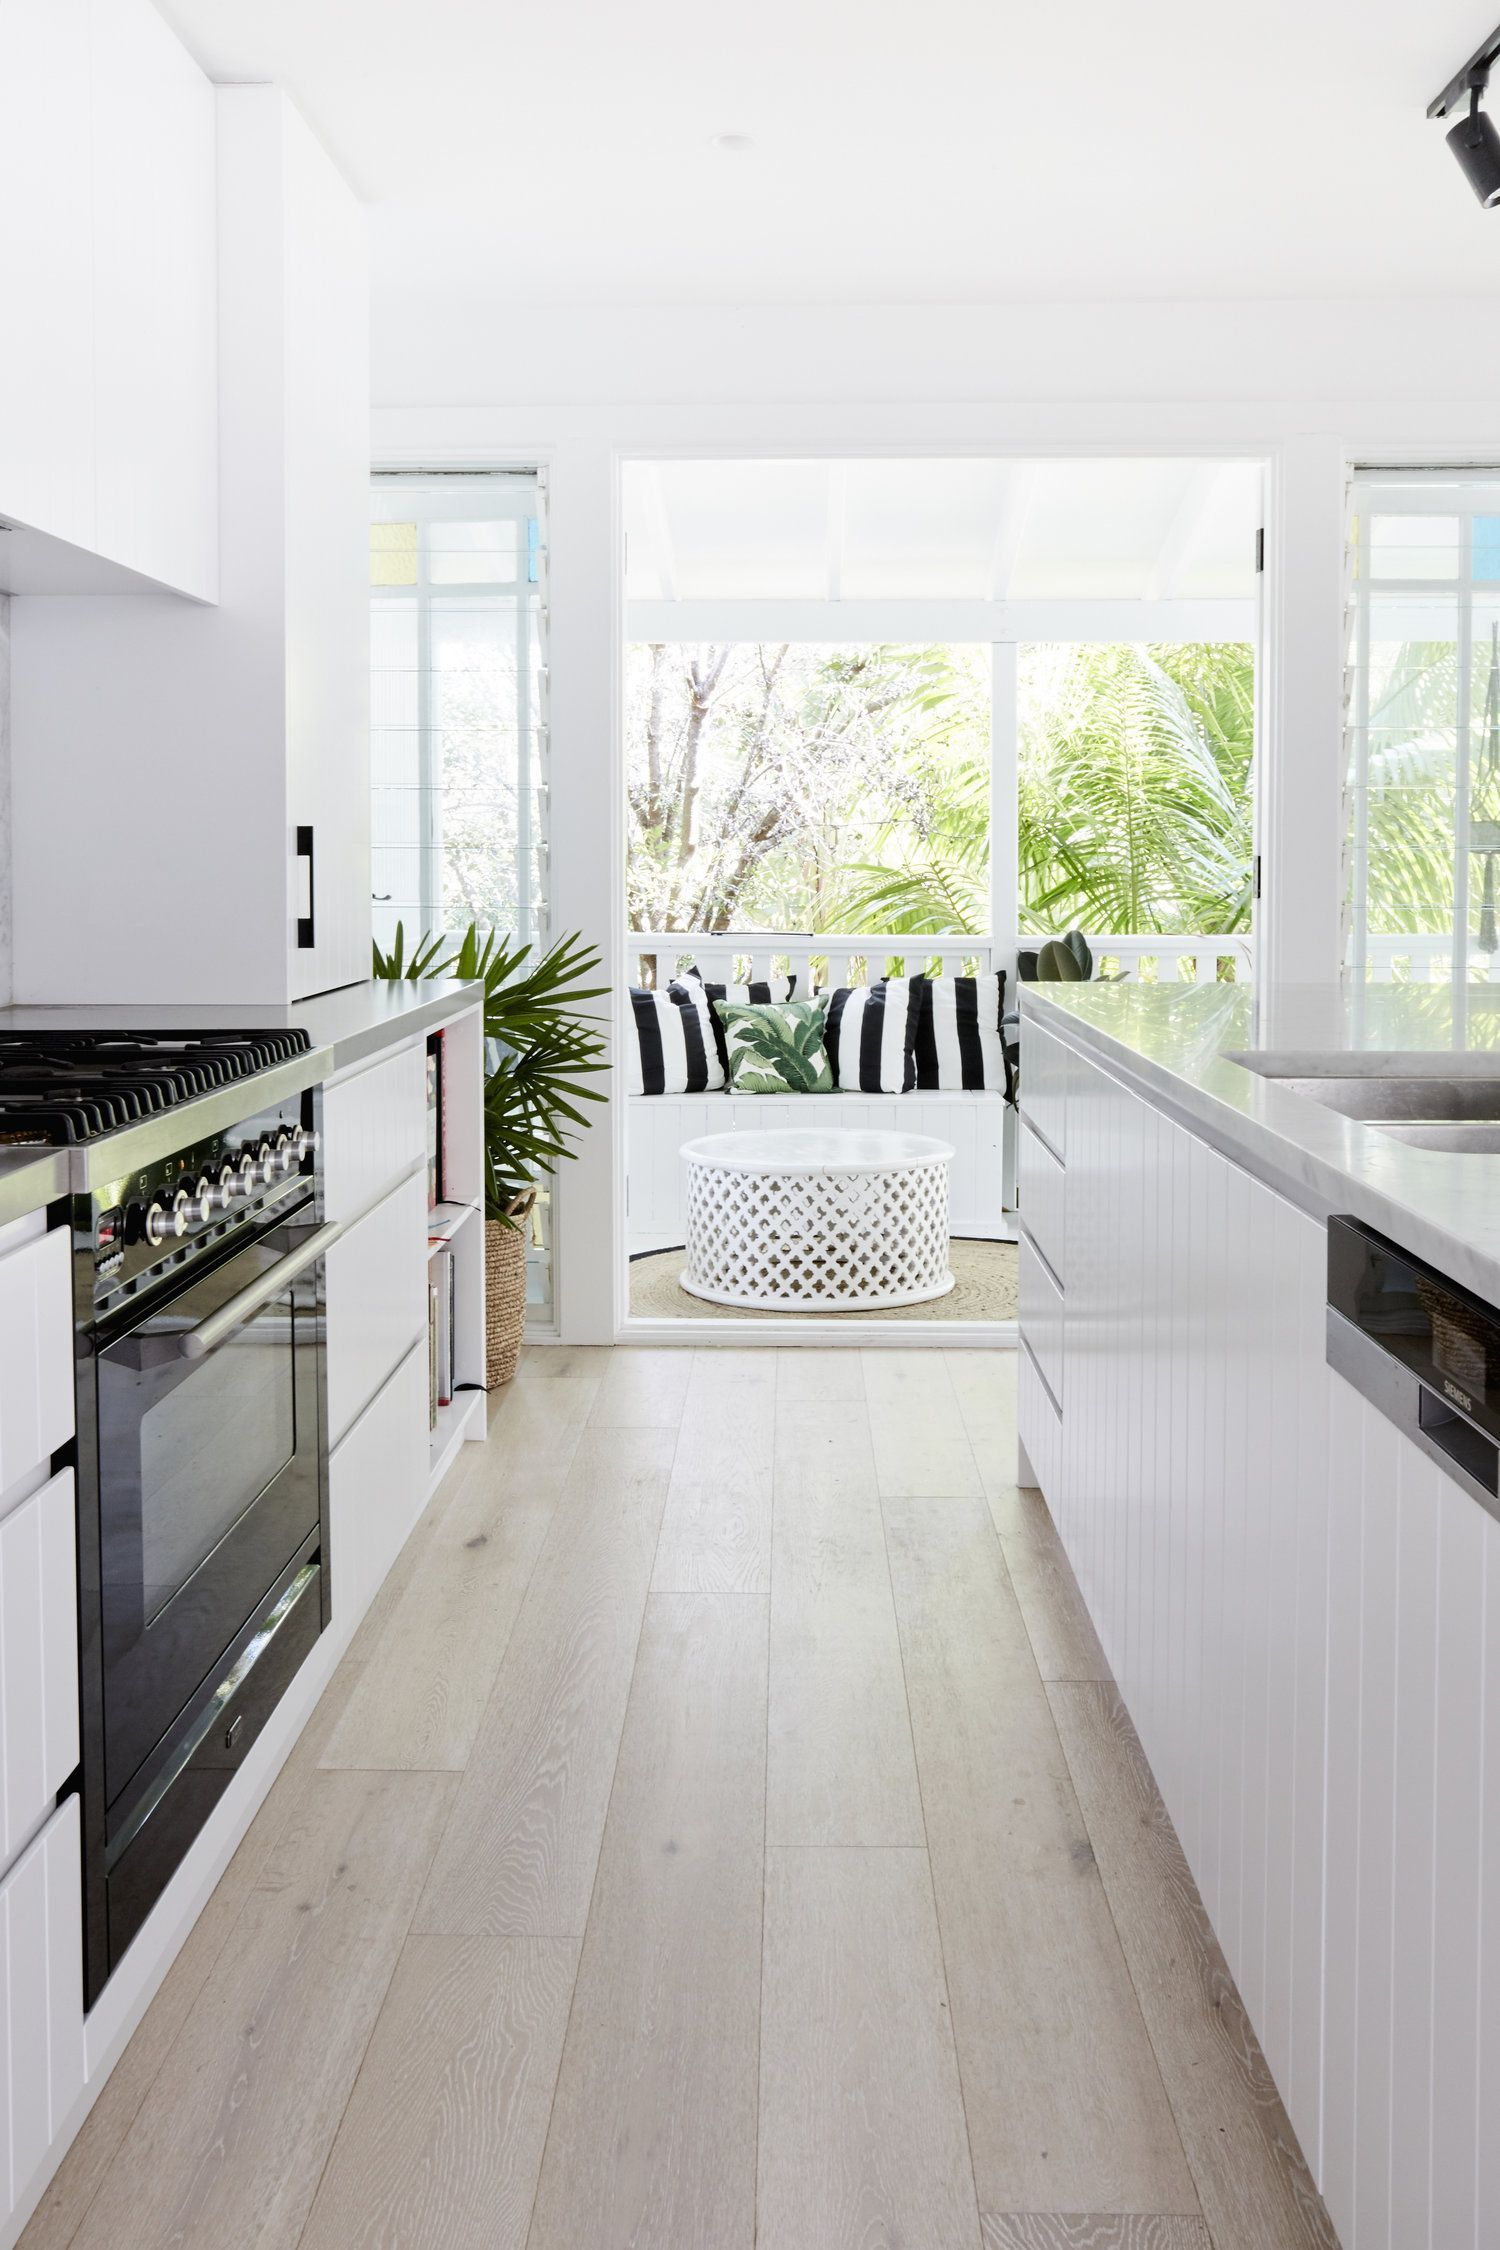 Simple modern kitchen light and airy black white bold cushions timber flooring also best designs ideas for small house decoration rh pinterest